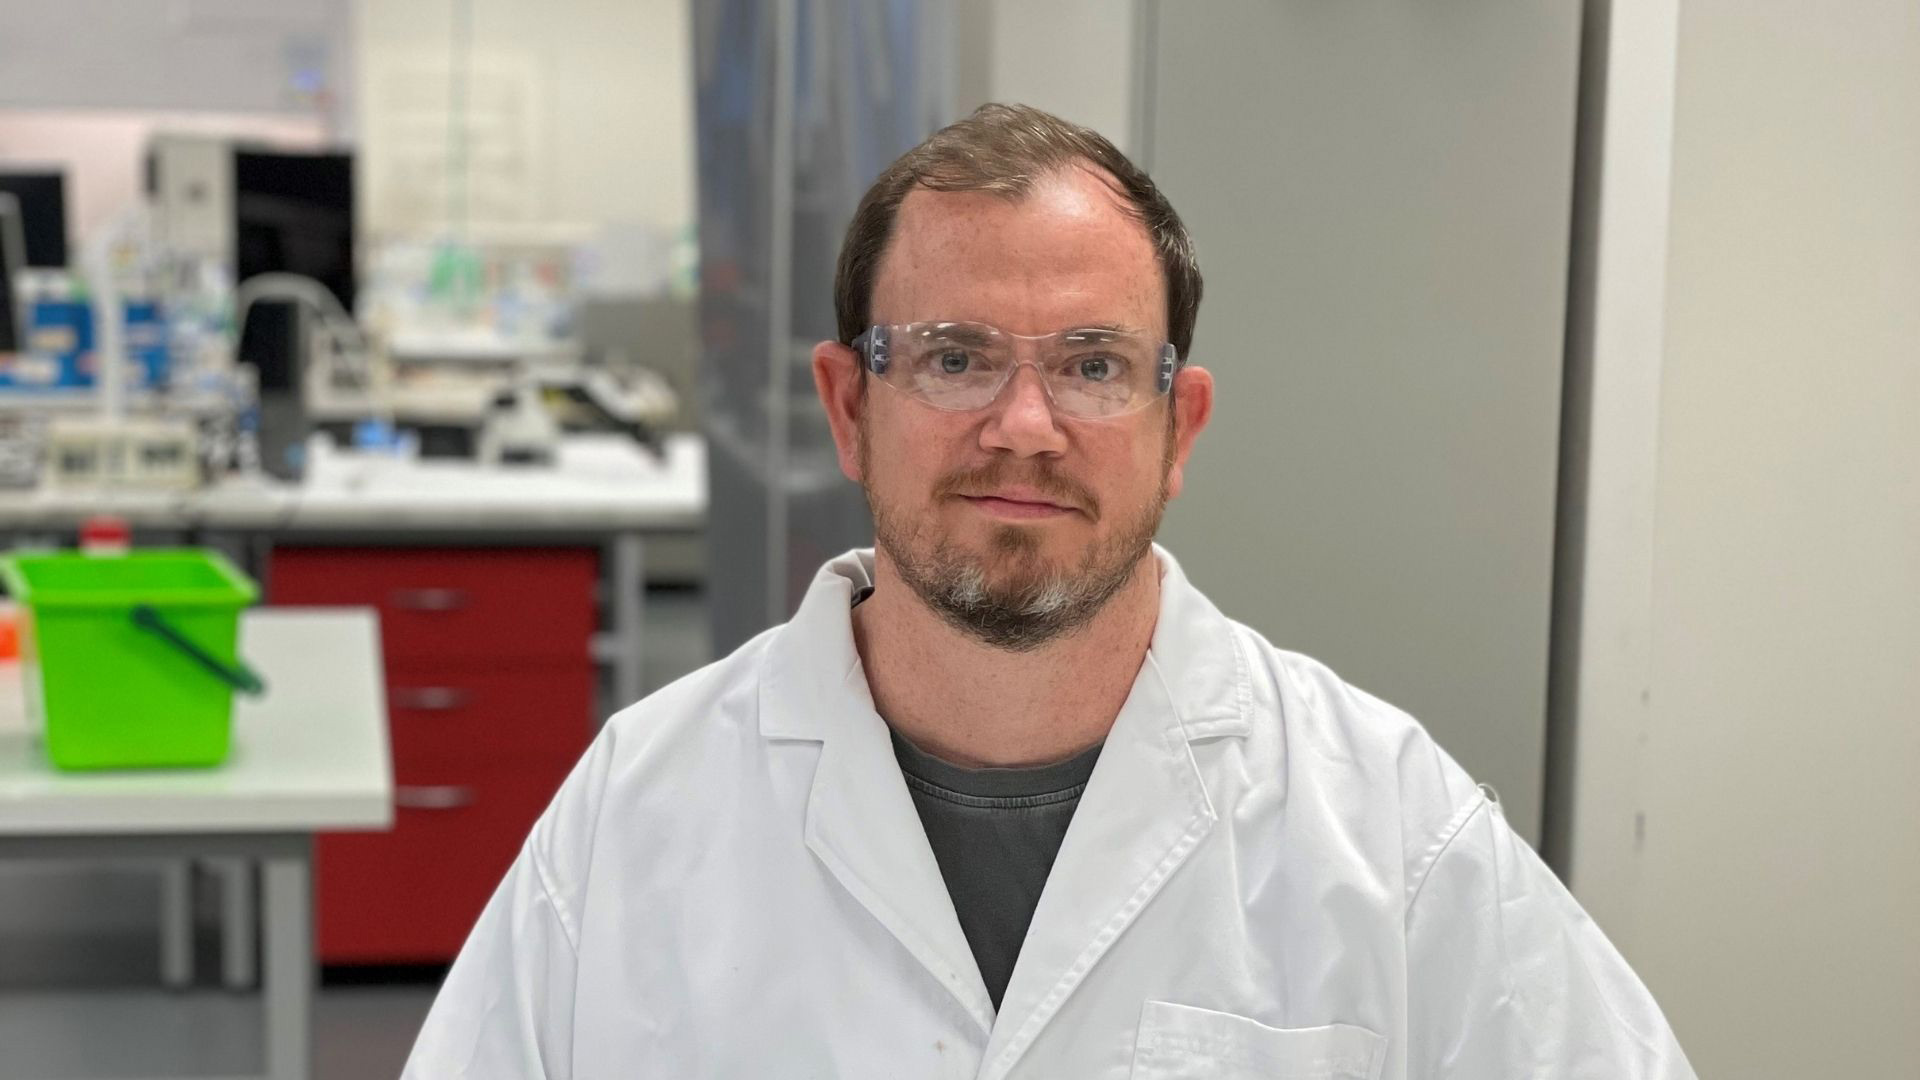 PhD Candidate, Aaron Hodges, from UOW's Intelligent Polymer Research Institute (IPRI) in the lab.